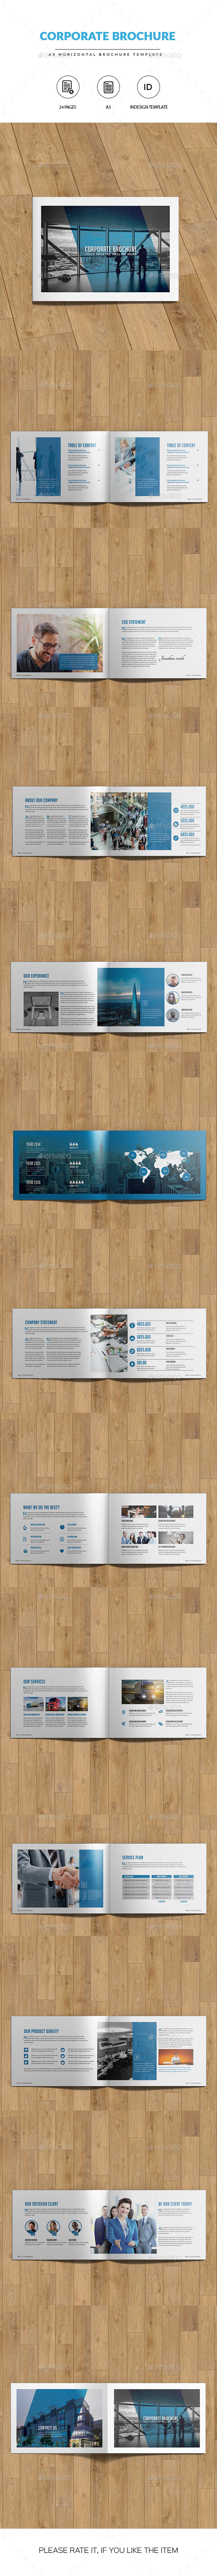 A5 Horizontal Business Brochure - Corporate Brochures